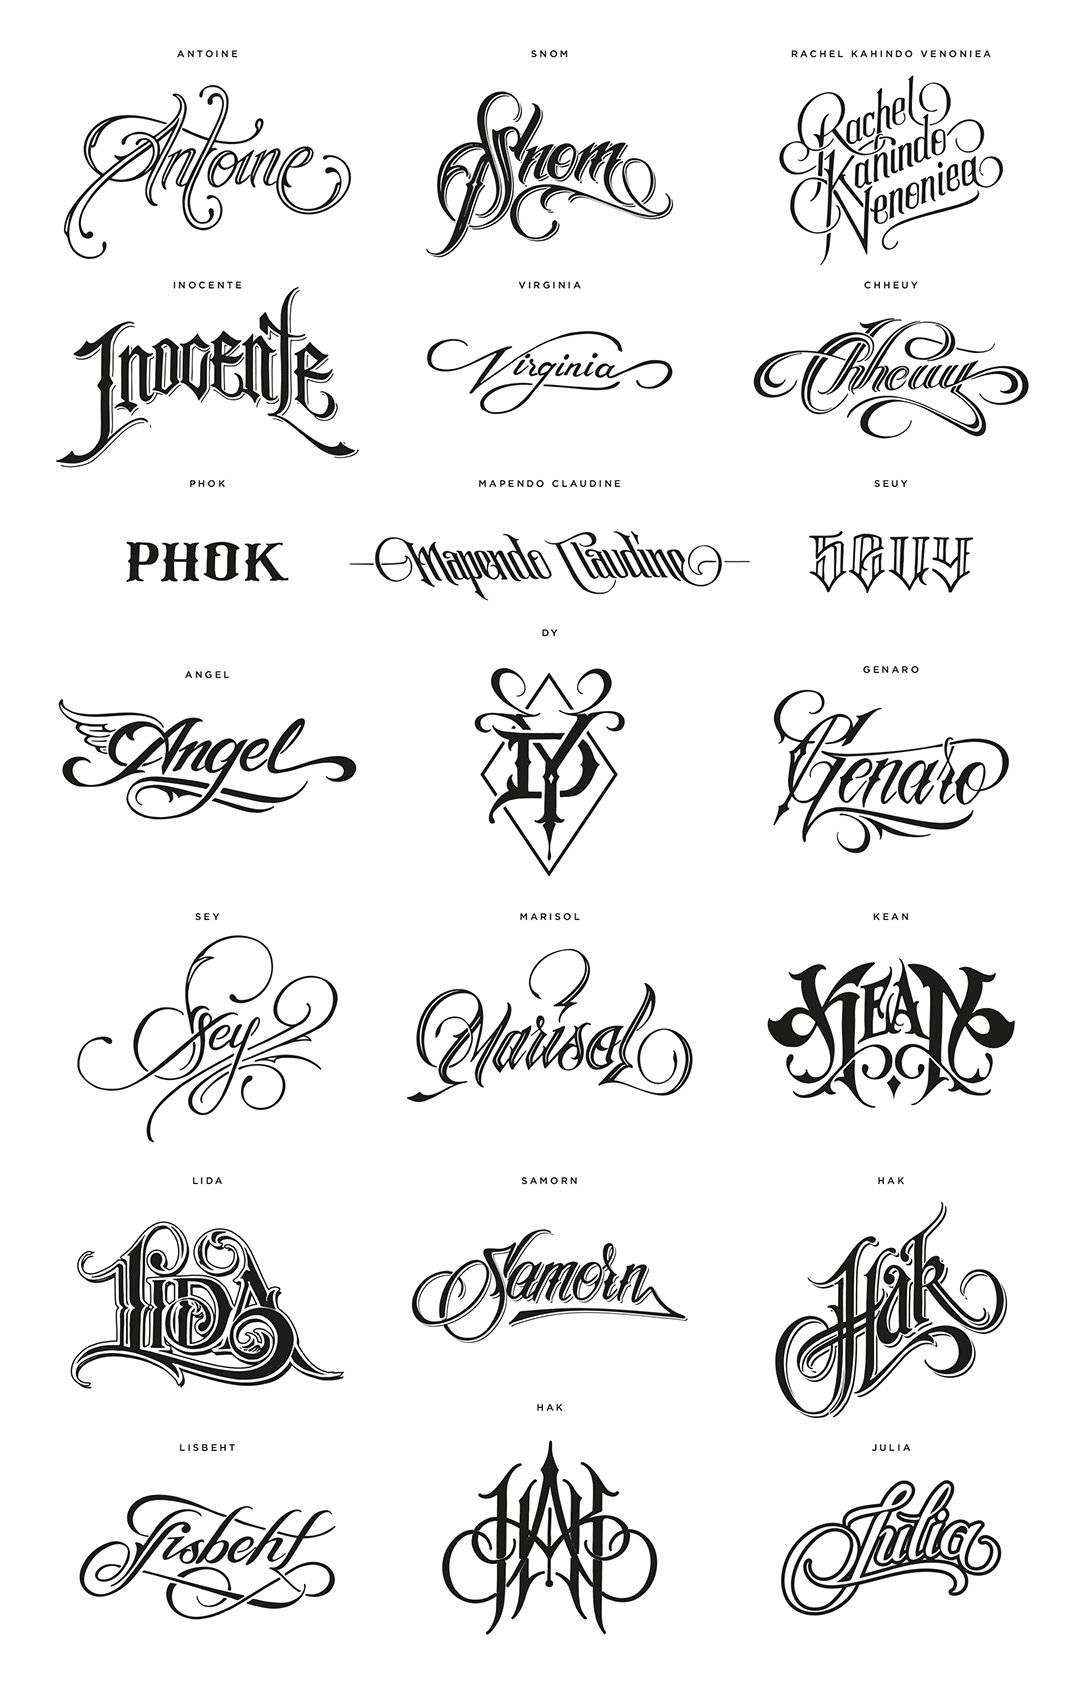 50 Tattoos For 50 Names Out Of The 805 Million People Suffering From Hunger In The World Today Ide Tato Tato Indah Huruf Grafiti